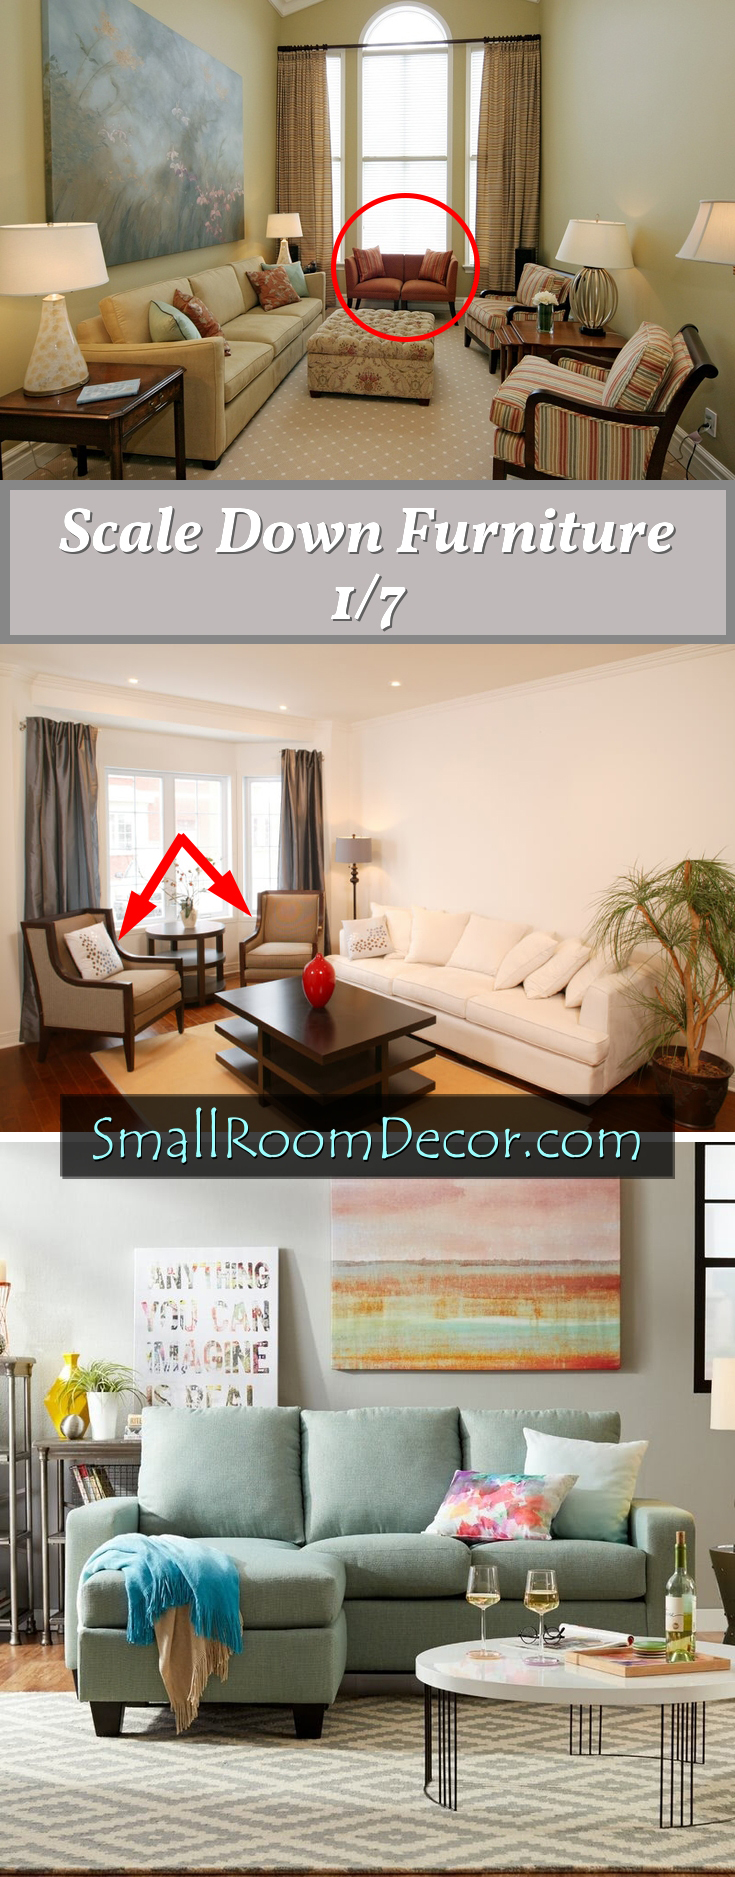 Scale down furniture #livingroomfurniture